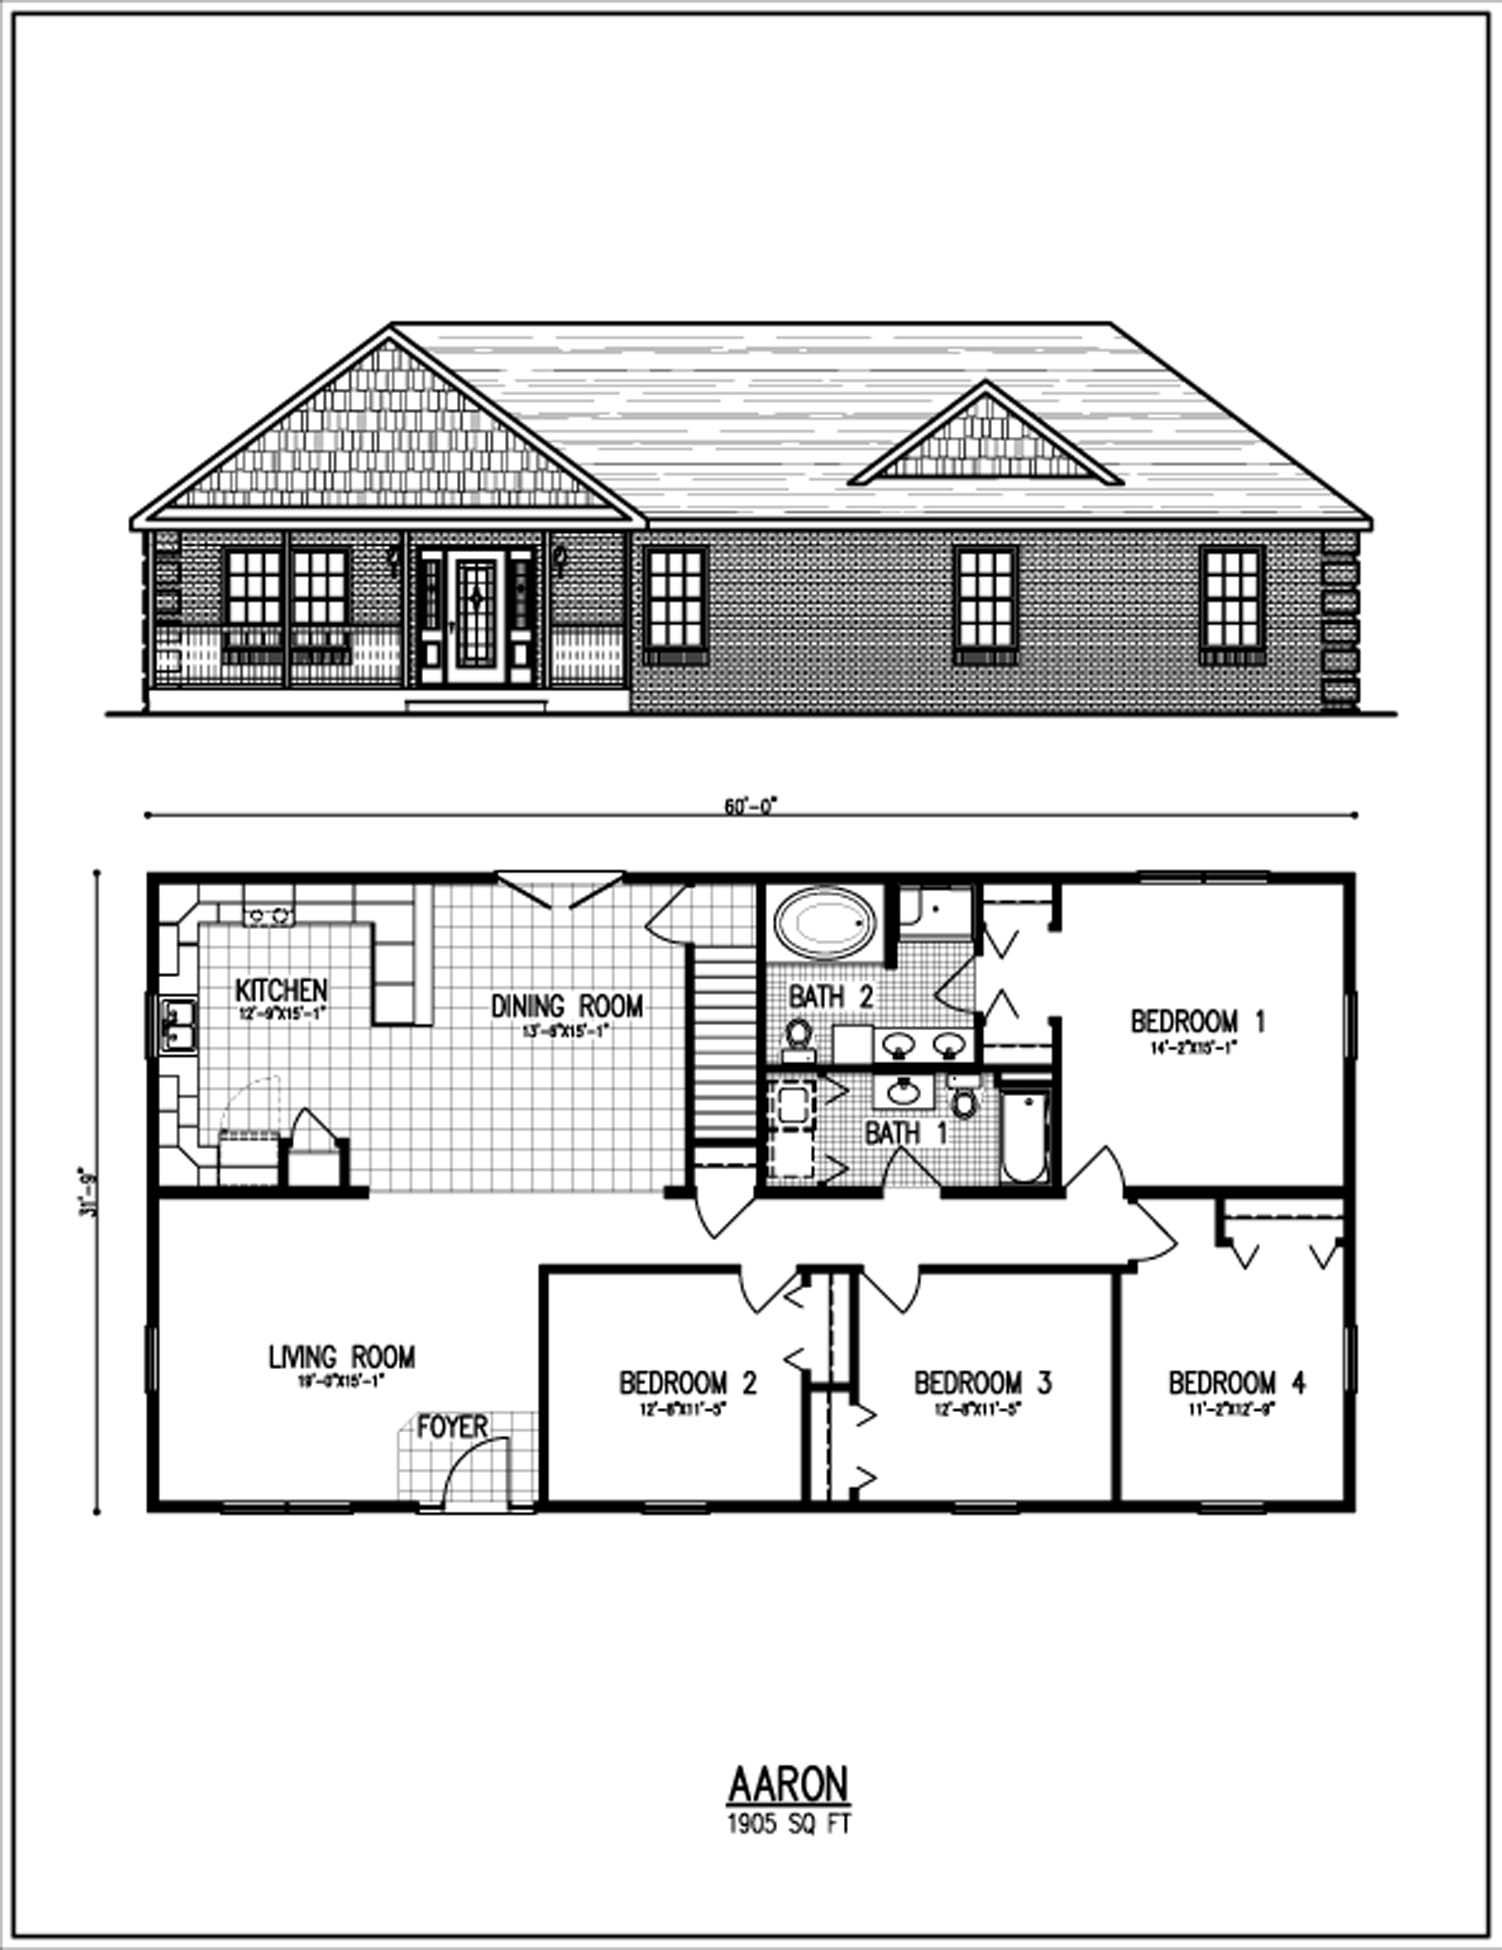 24 x 52 ranch floor plans pine grove homes floorplan detail g 220 house plans pinterest ranch floor plans floor plans and pine